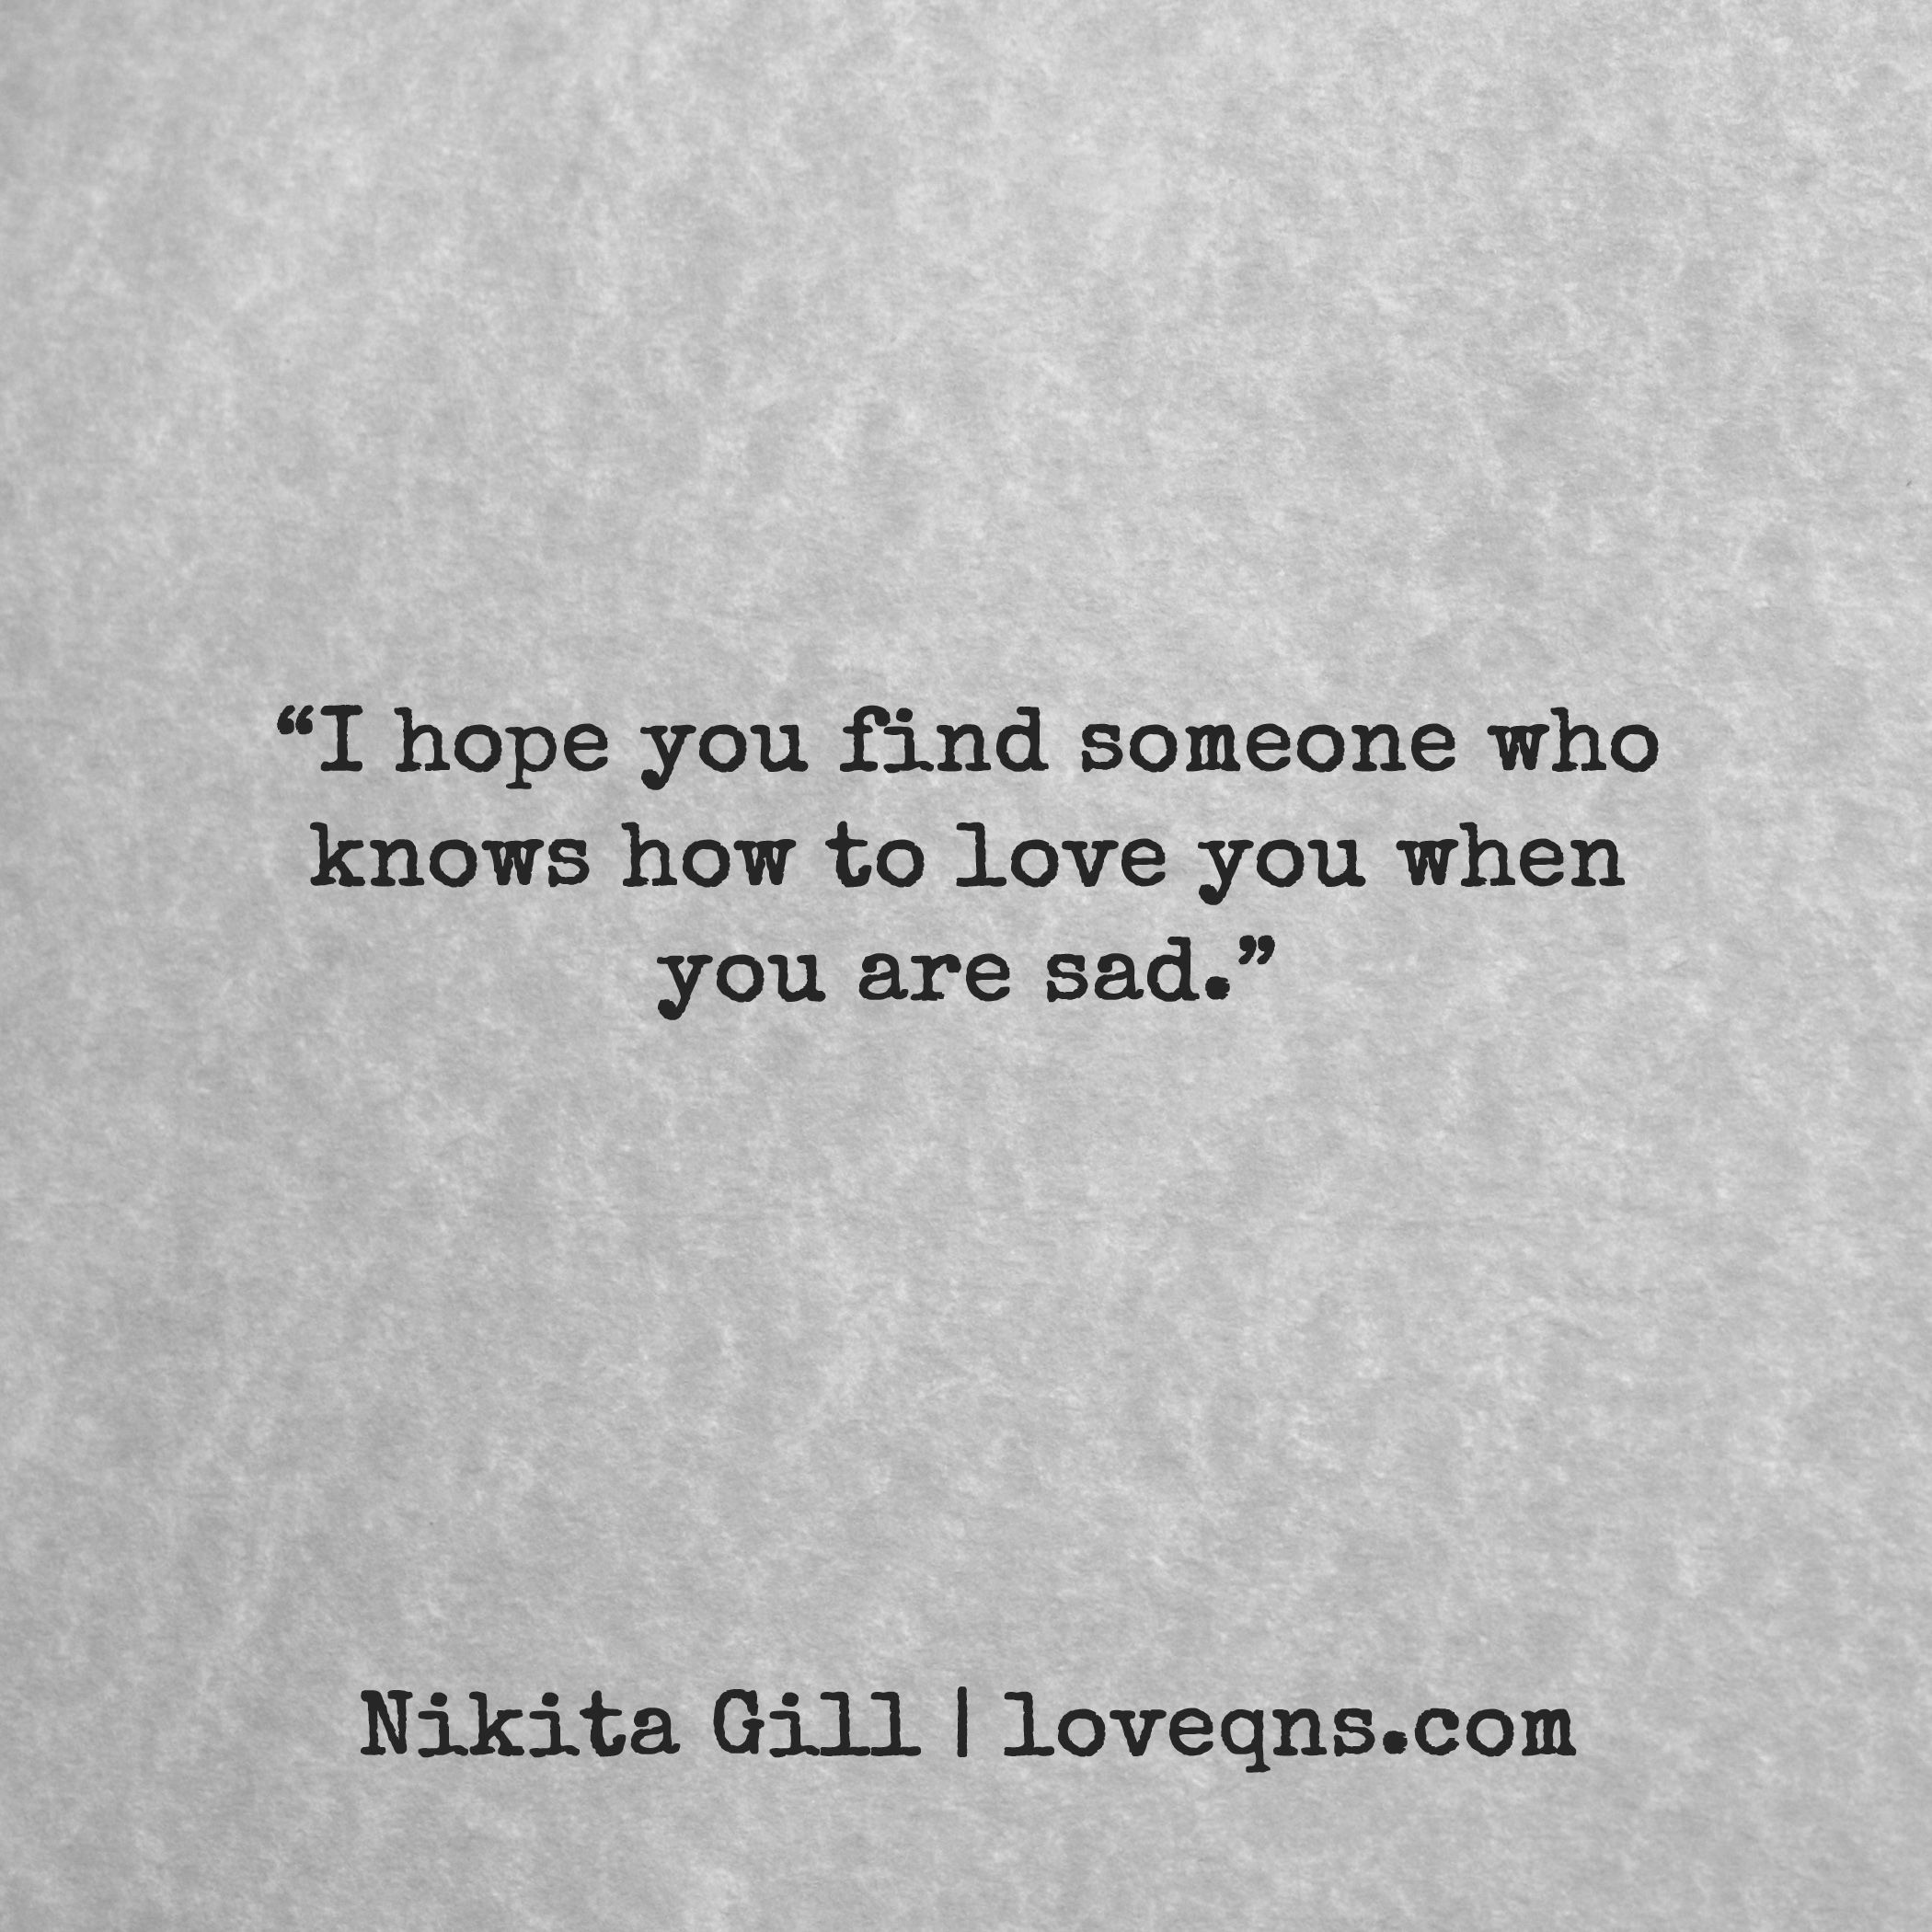 €�i Hope You Find Someone Who Knows How To Love You When You Are Sad